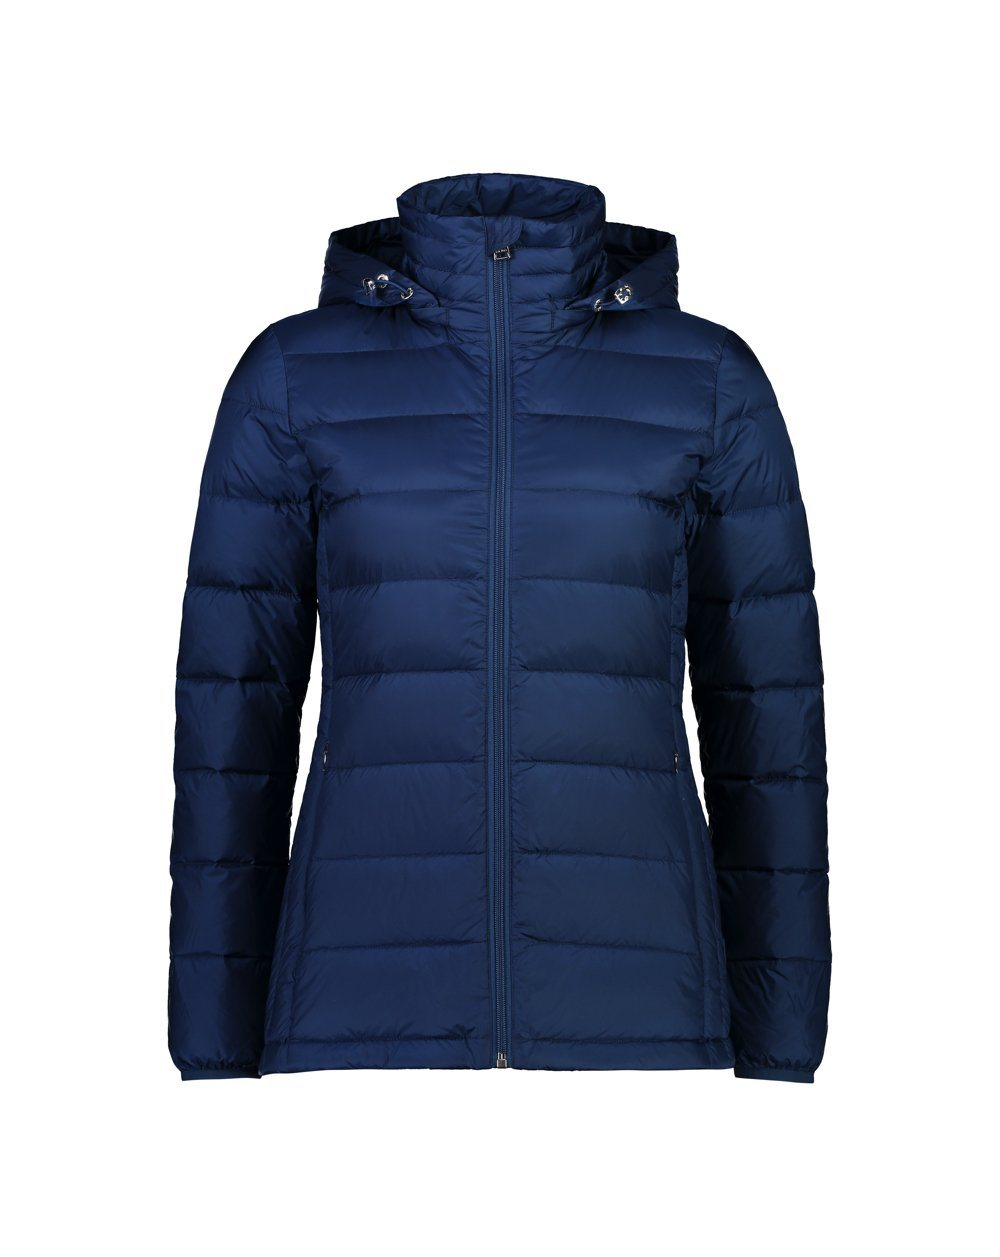 MOKE Lynn Down Jacket - Peacock Jackets + Coats - Zabecca Living